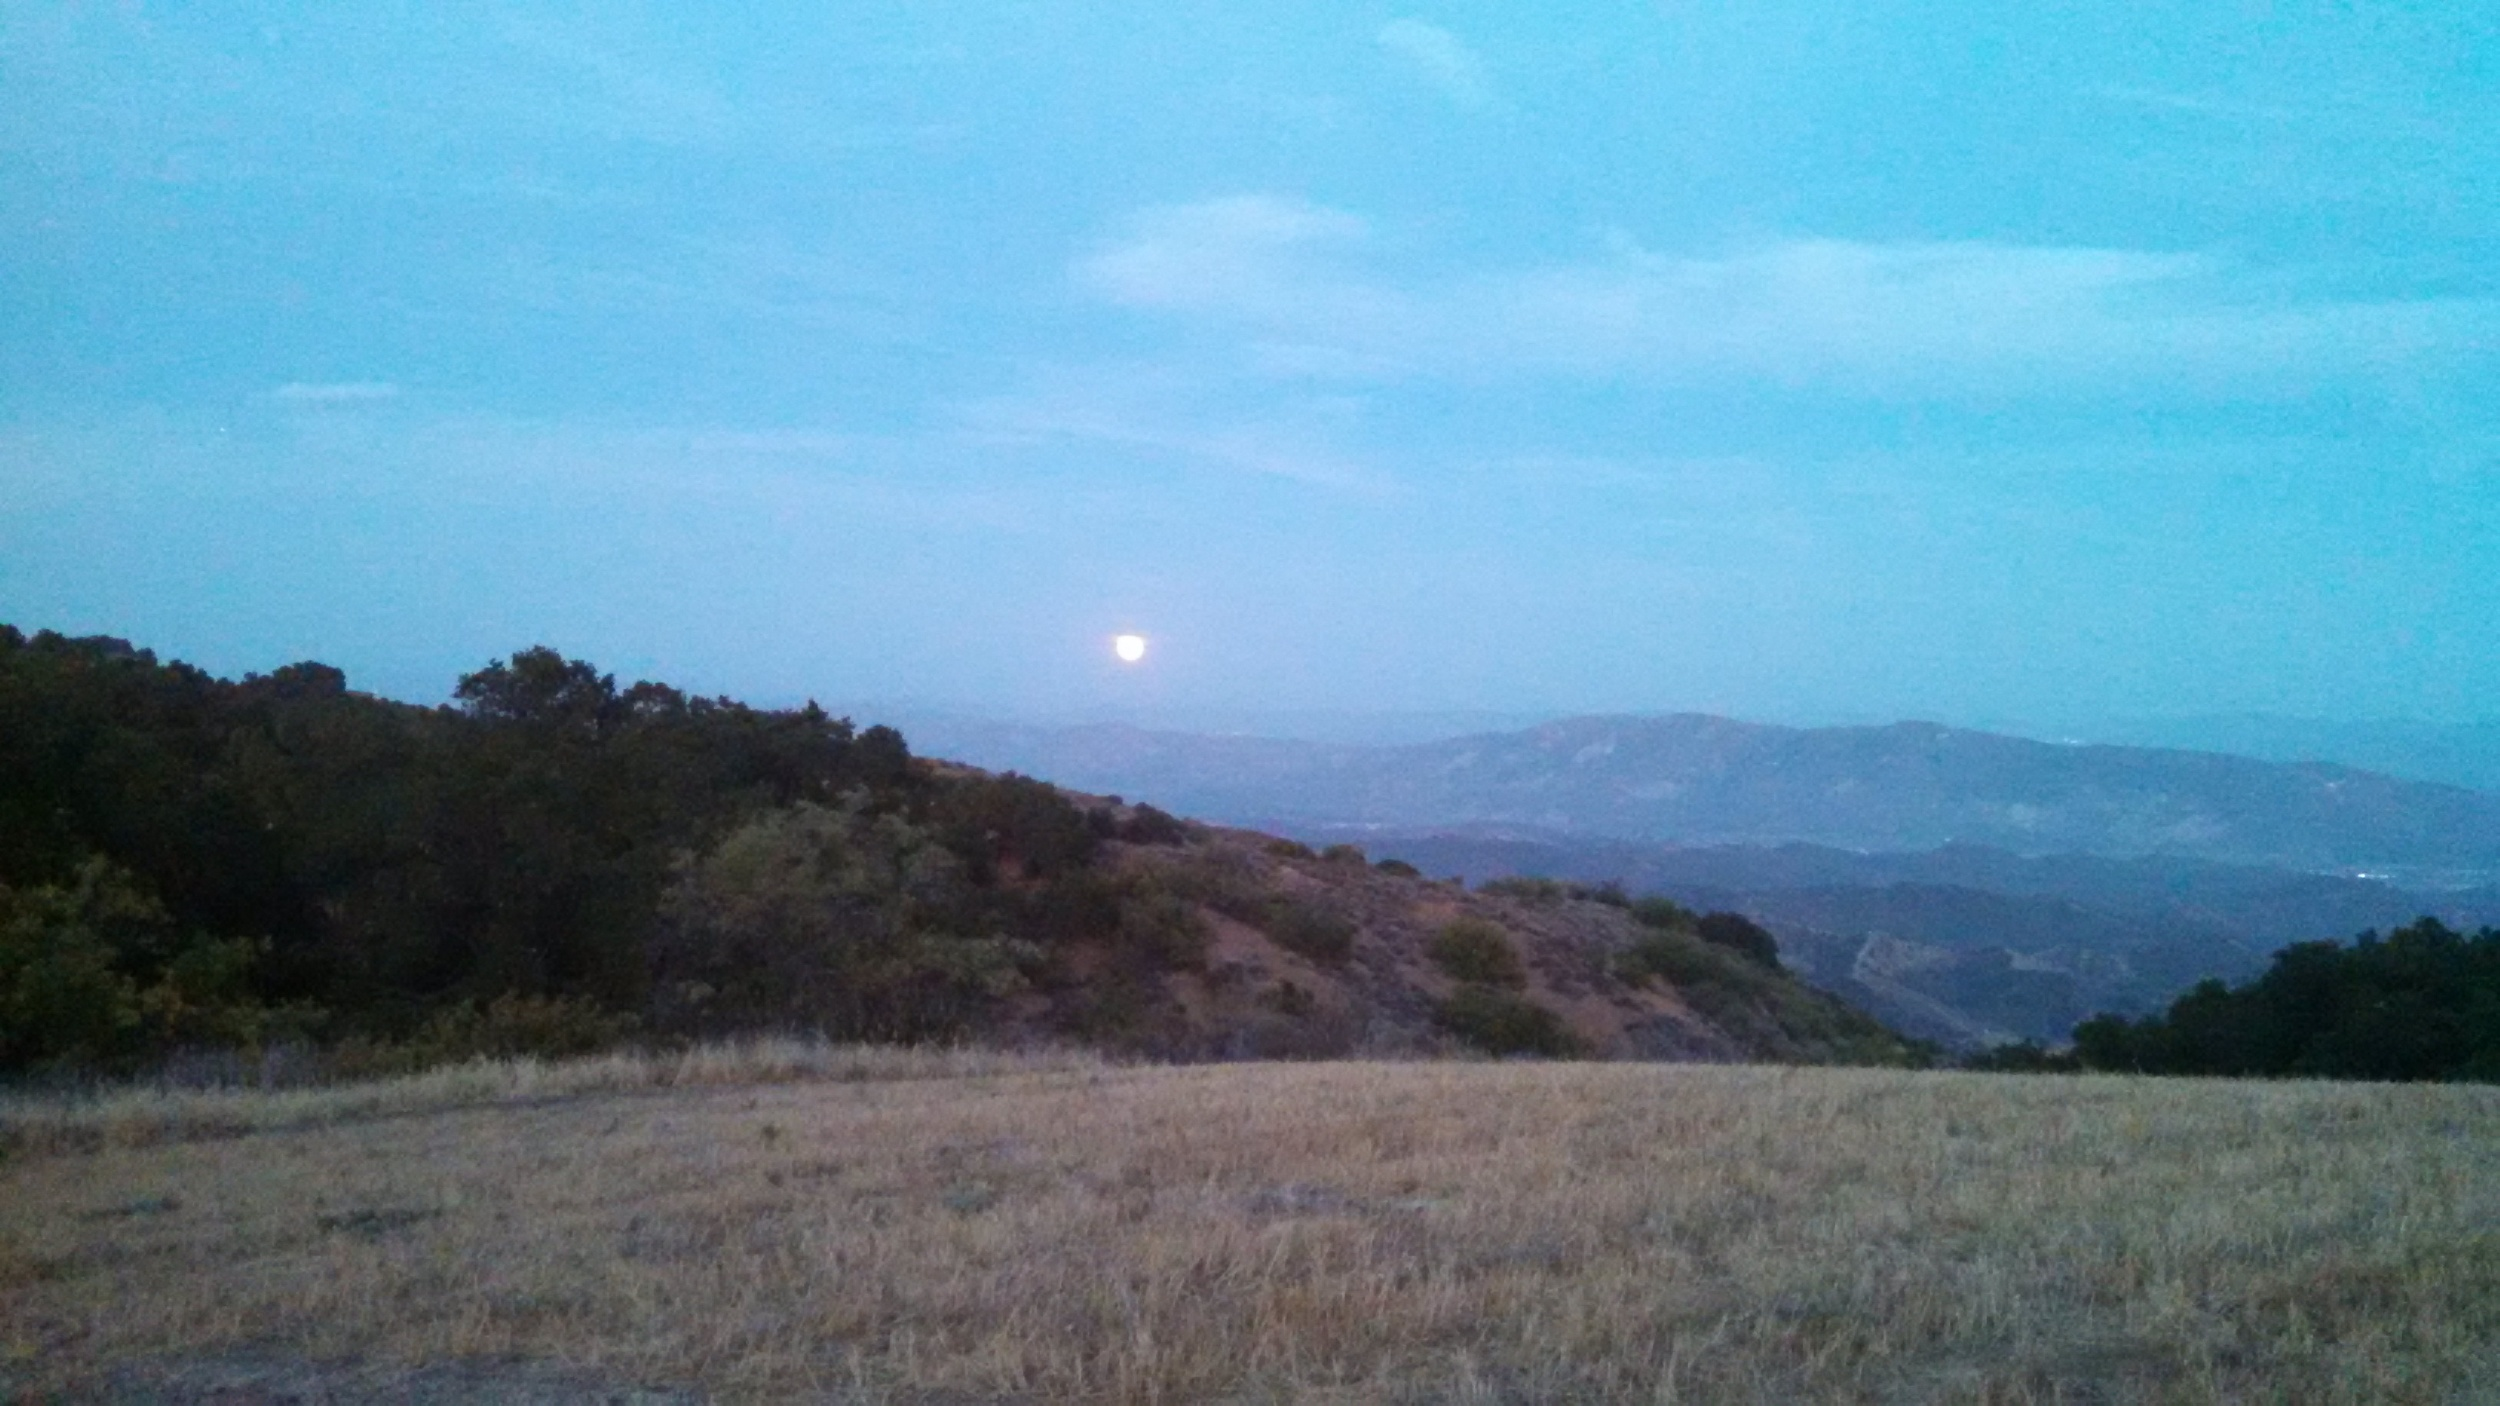 WATCHING THE FULL MOON RISE over Santa Paula and the Heritage Valley from Meher Mount. (Photo: Ron Holsey, July 12, 2014.)